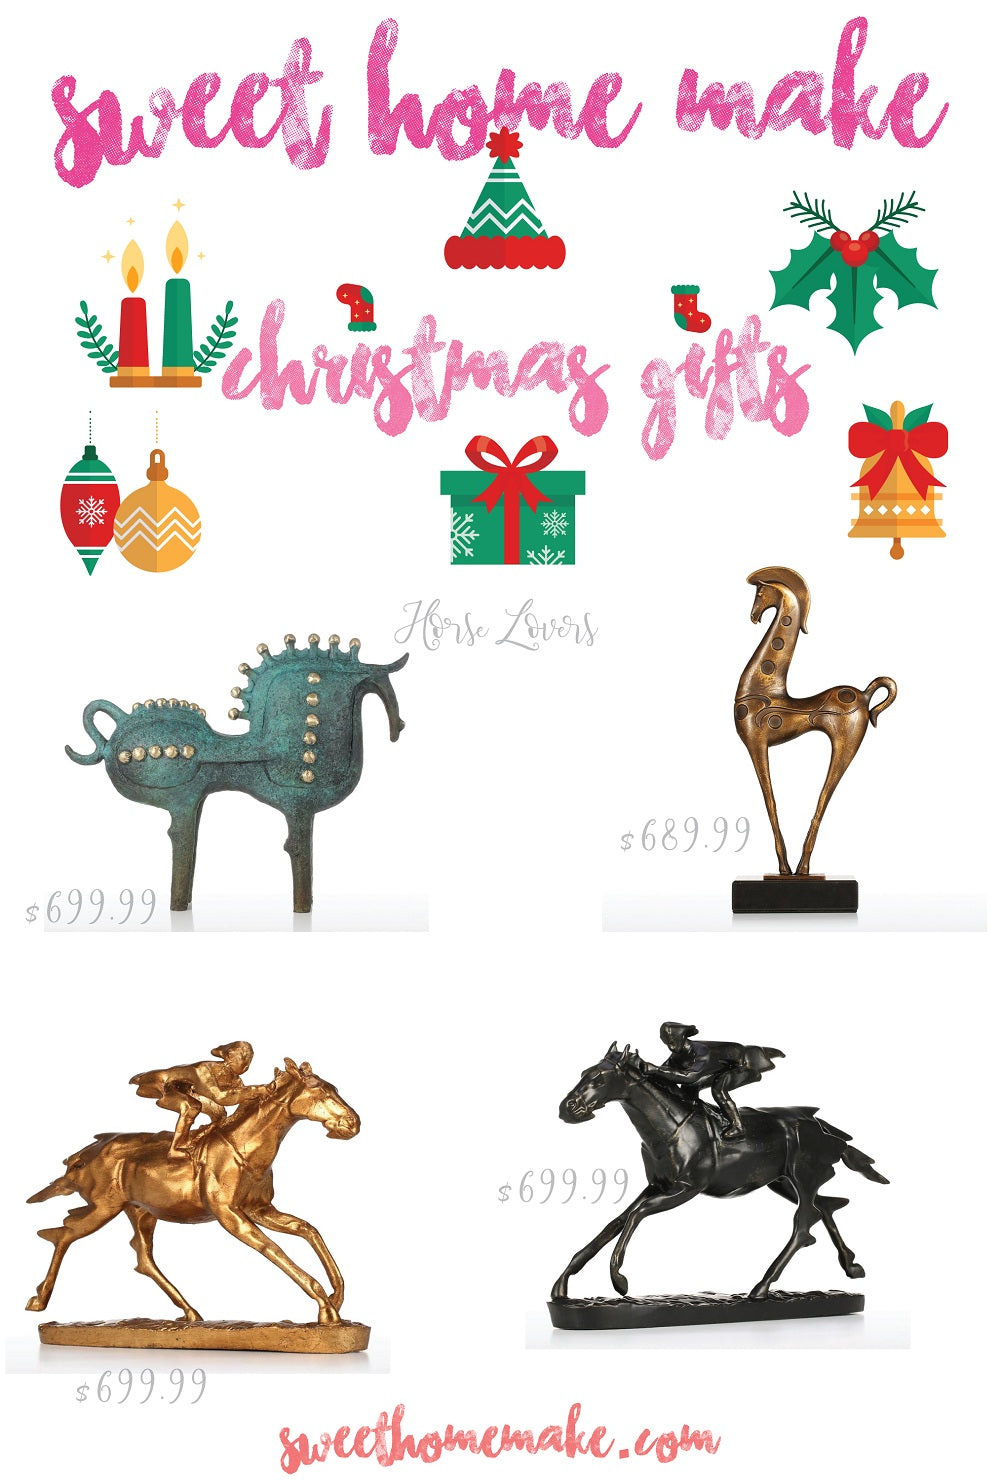 Gifts for Horse Lovers and Horse Gifts with Christmas Gifts